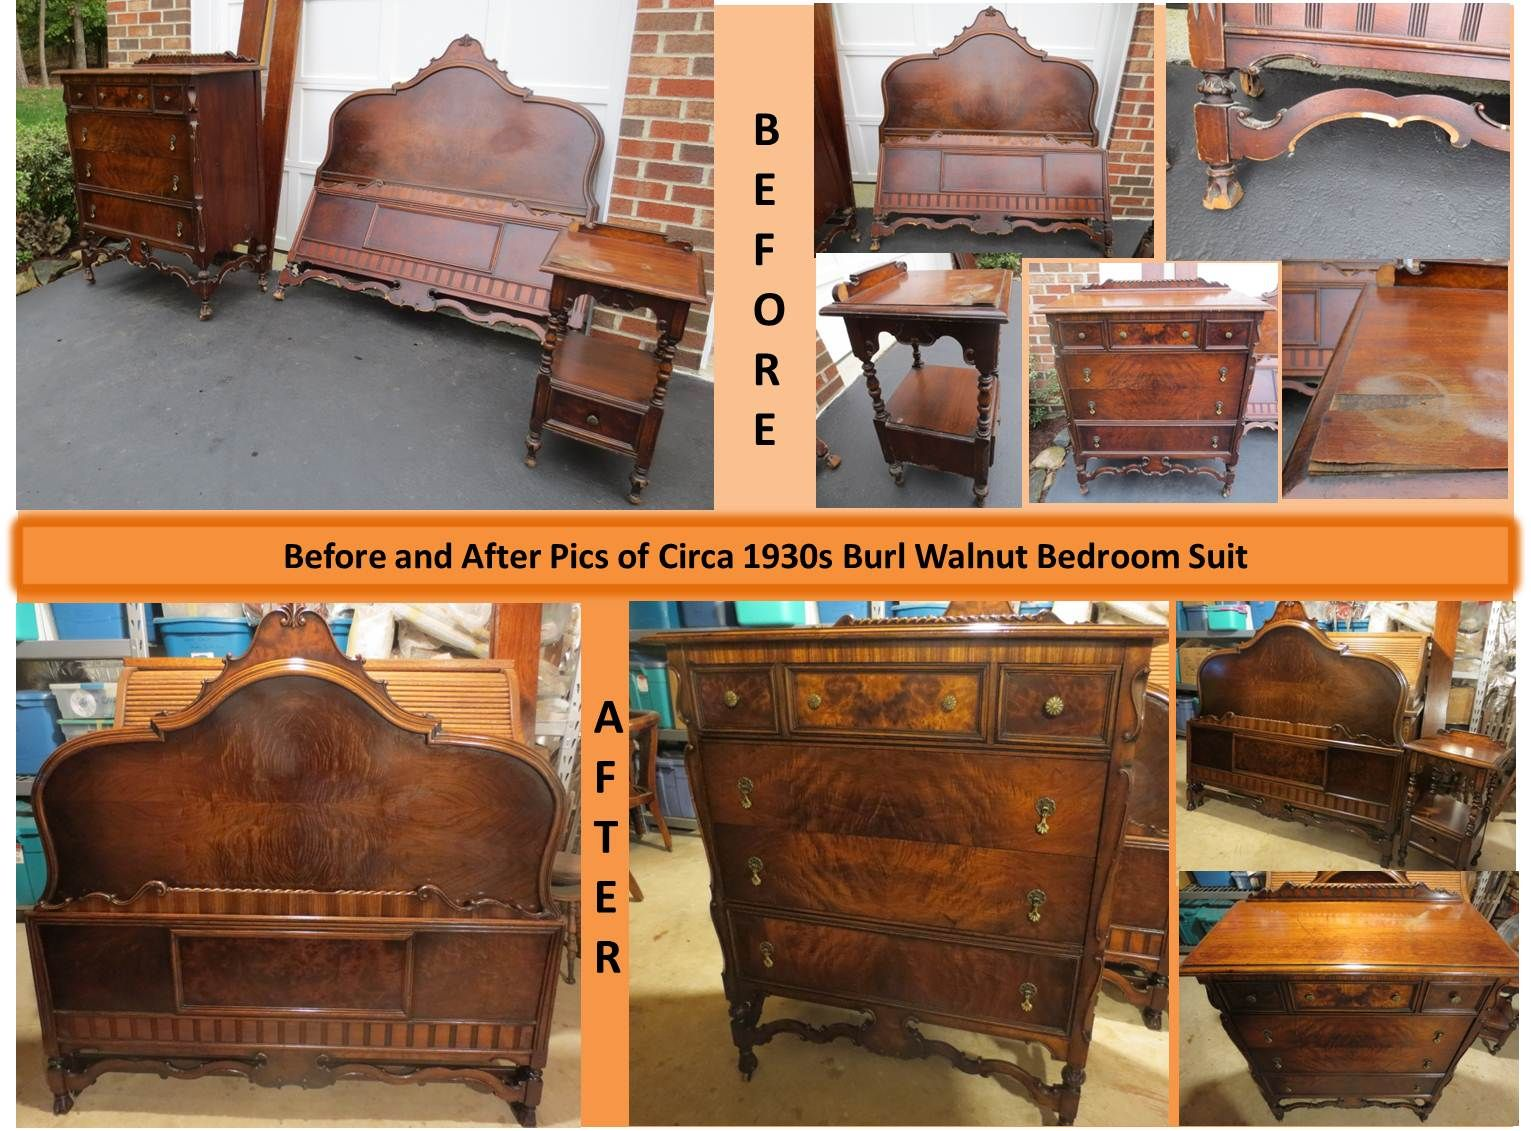 Ca 1920s Burl Walnut Bedroom Suite That I Restored Refinished Into Beautiful Bedroom Furniture